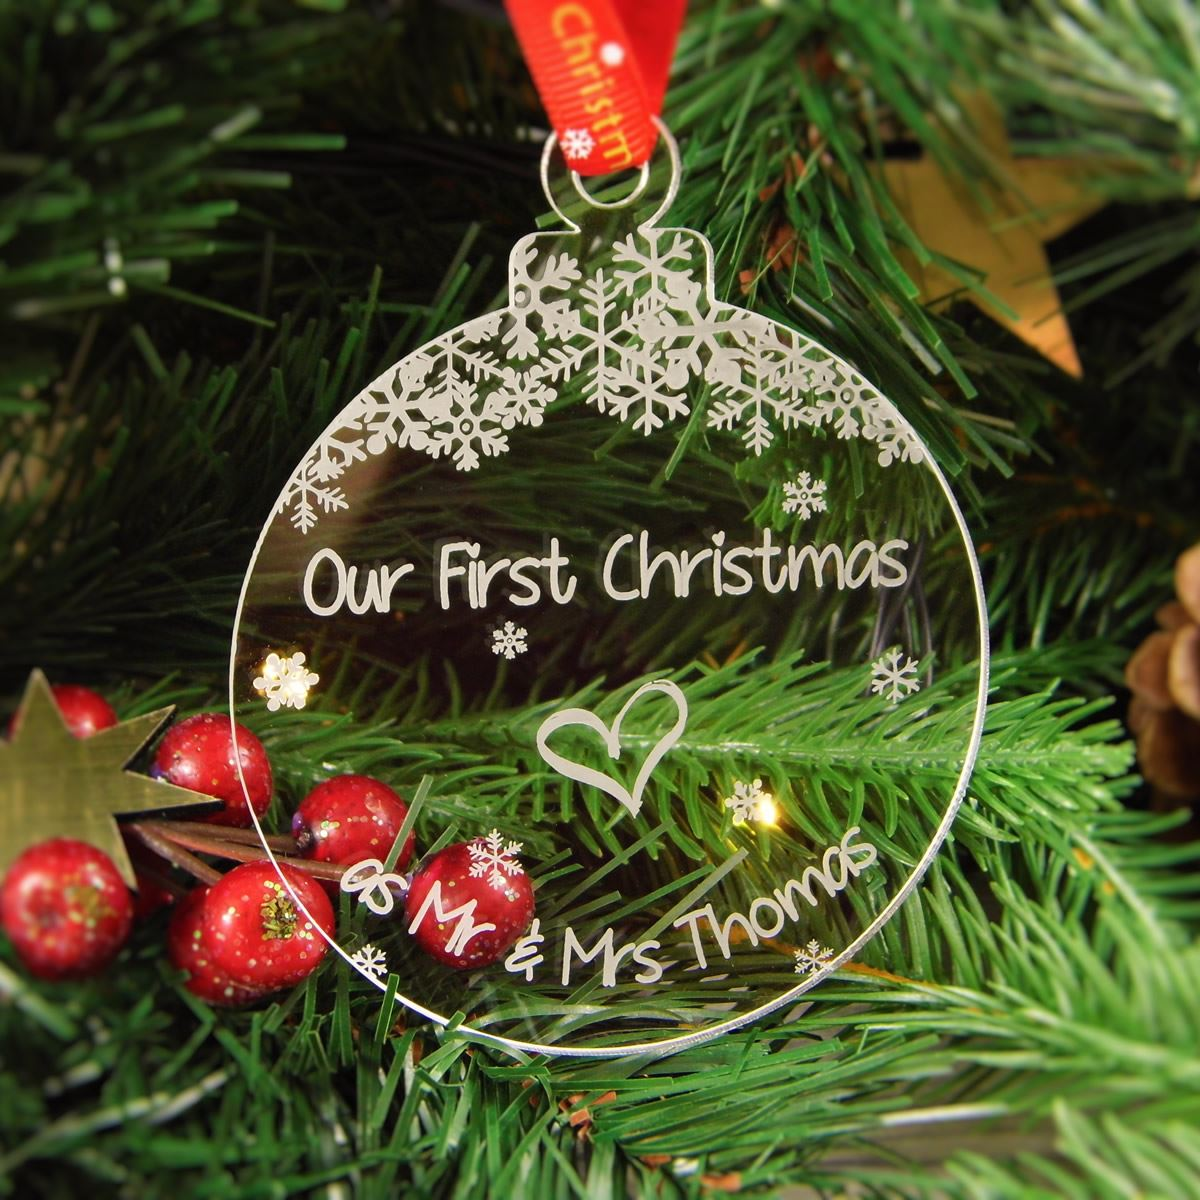 Mr and mrs christmas tree decoration - The Baubles Are A Blank Canvas So Please Let Us Know The Exact Full Message You Would Like Engraved